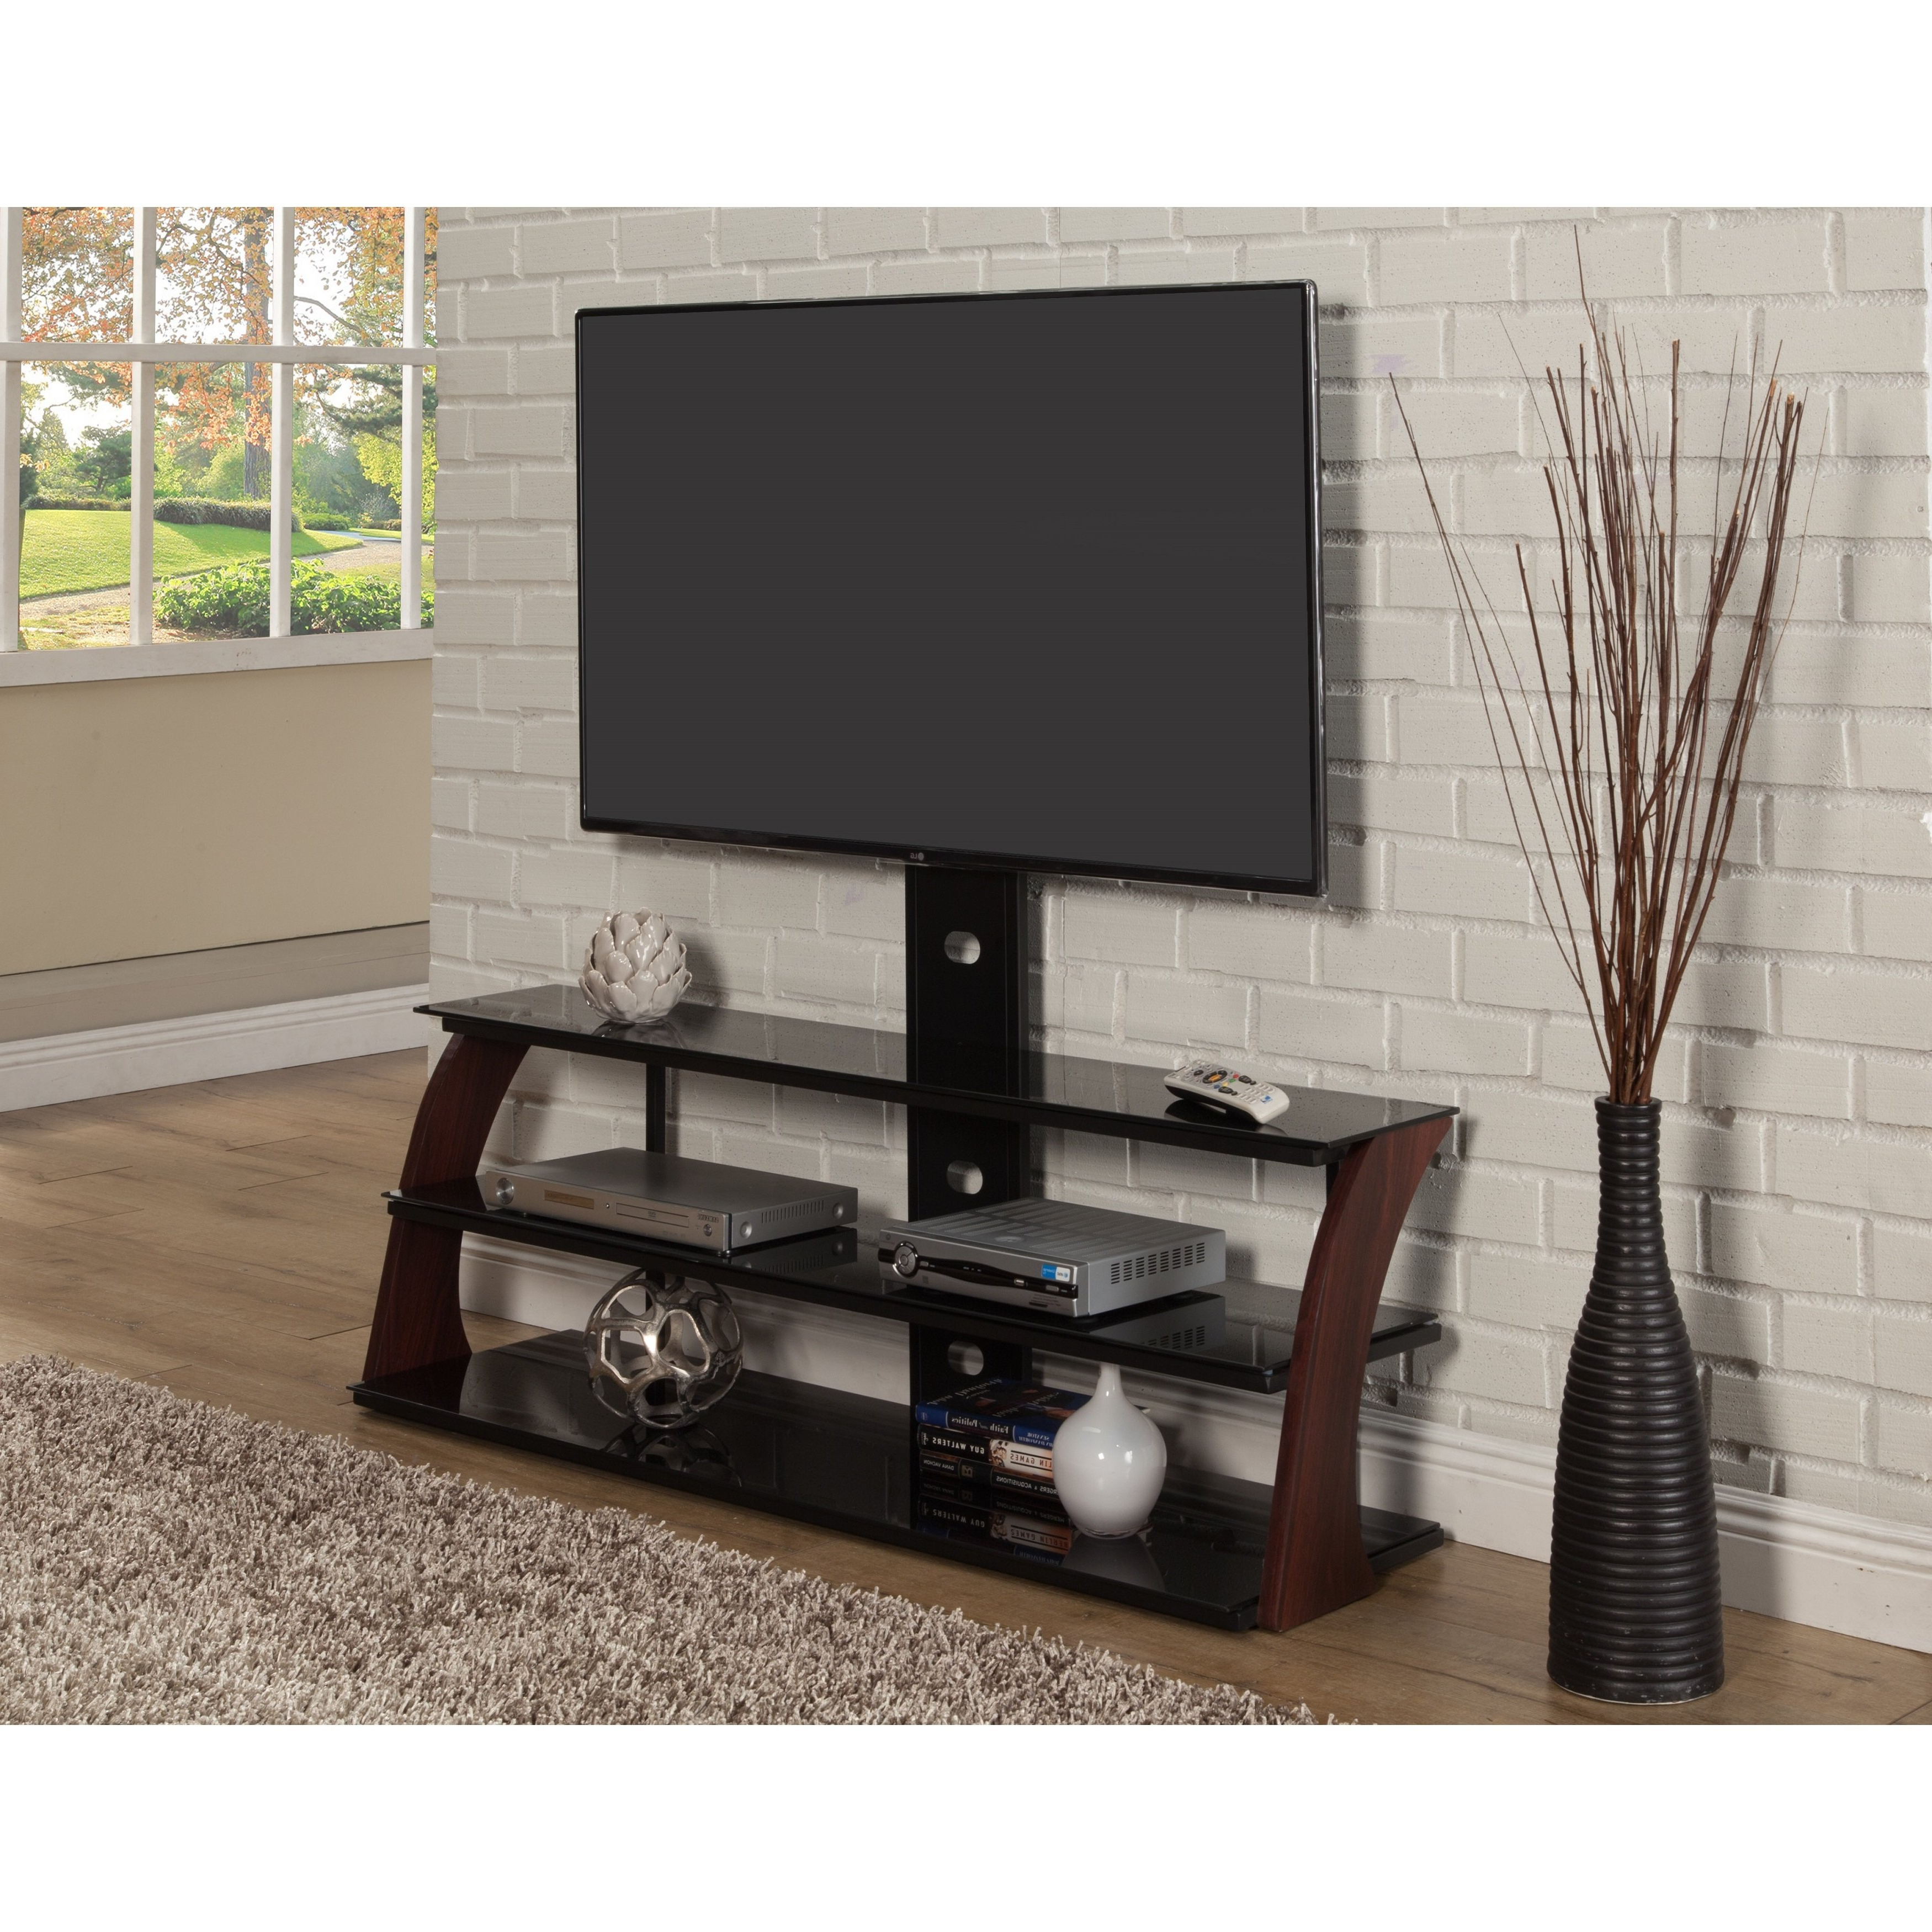 Shop Sandberg Furniture Abigail Black Tv Stand – Free Shipping Today Intended For Walters Media Console Tables (View 6 of 20)